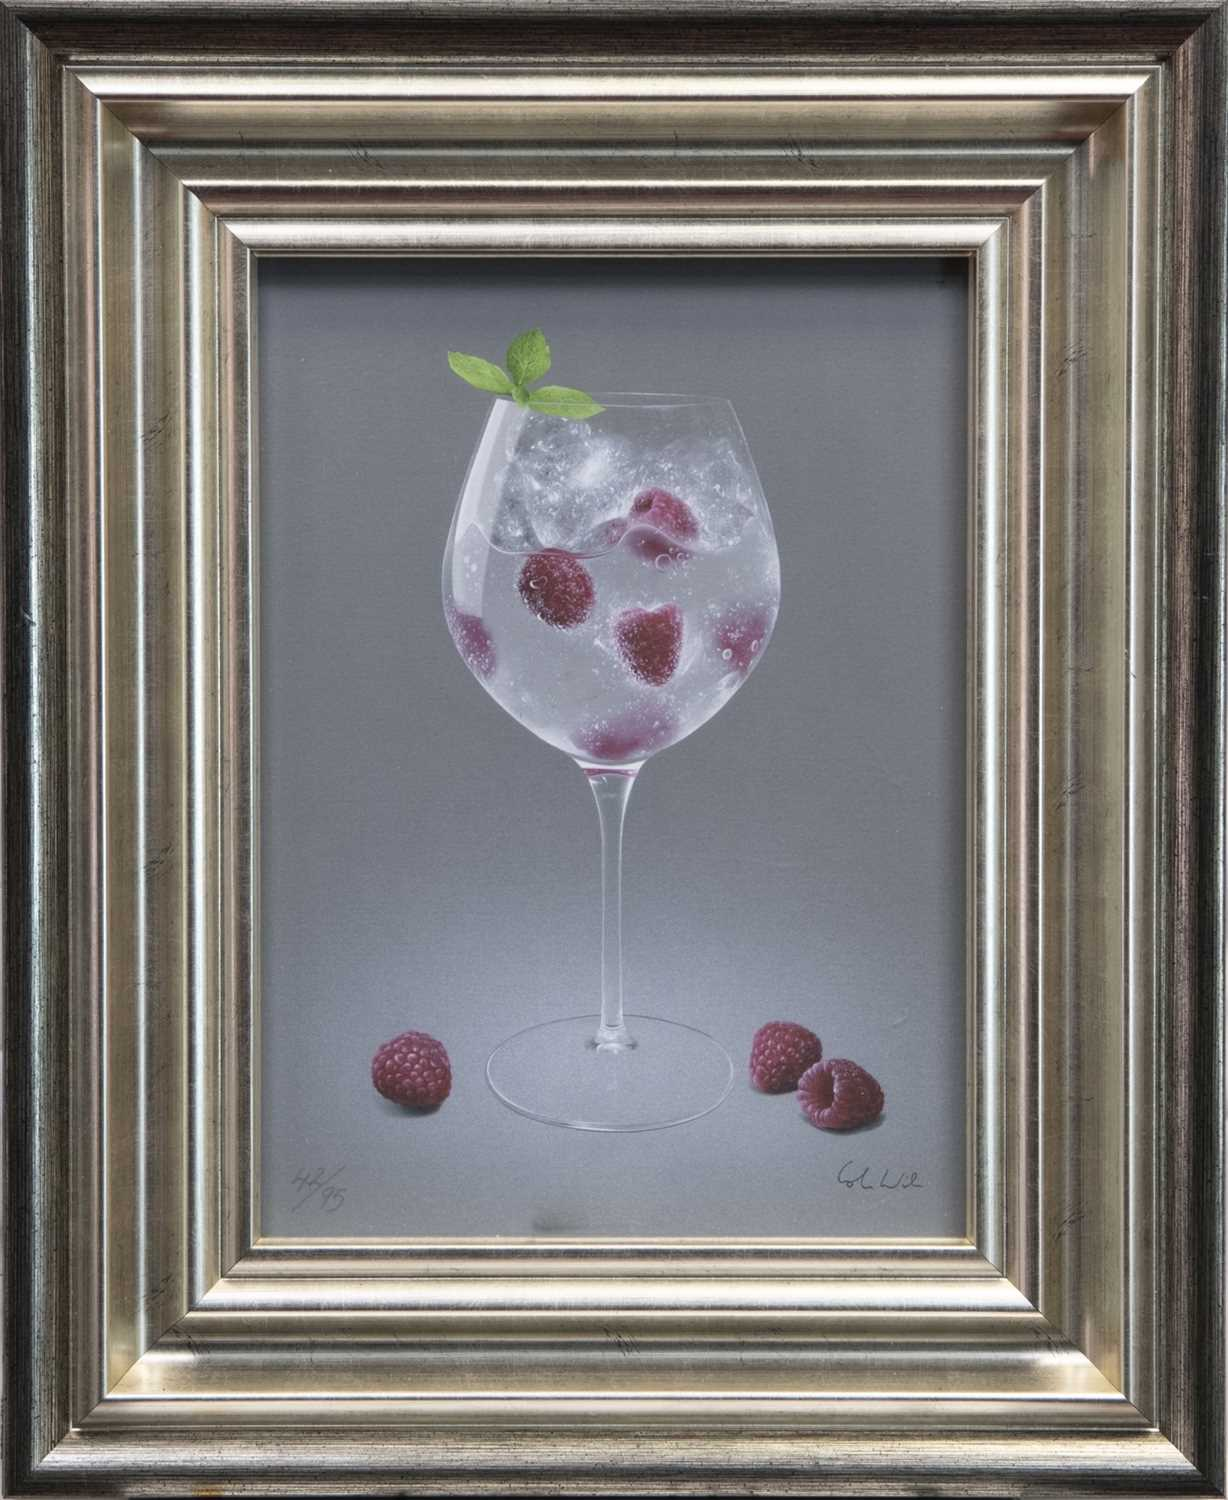 Lot 167 - RASPBERRIES AND TONIC, A GICLEE PRINT BY COLIN WILSON